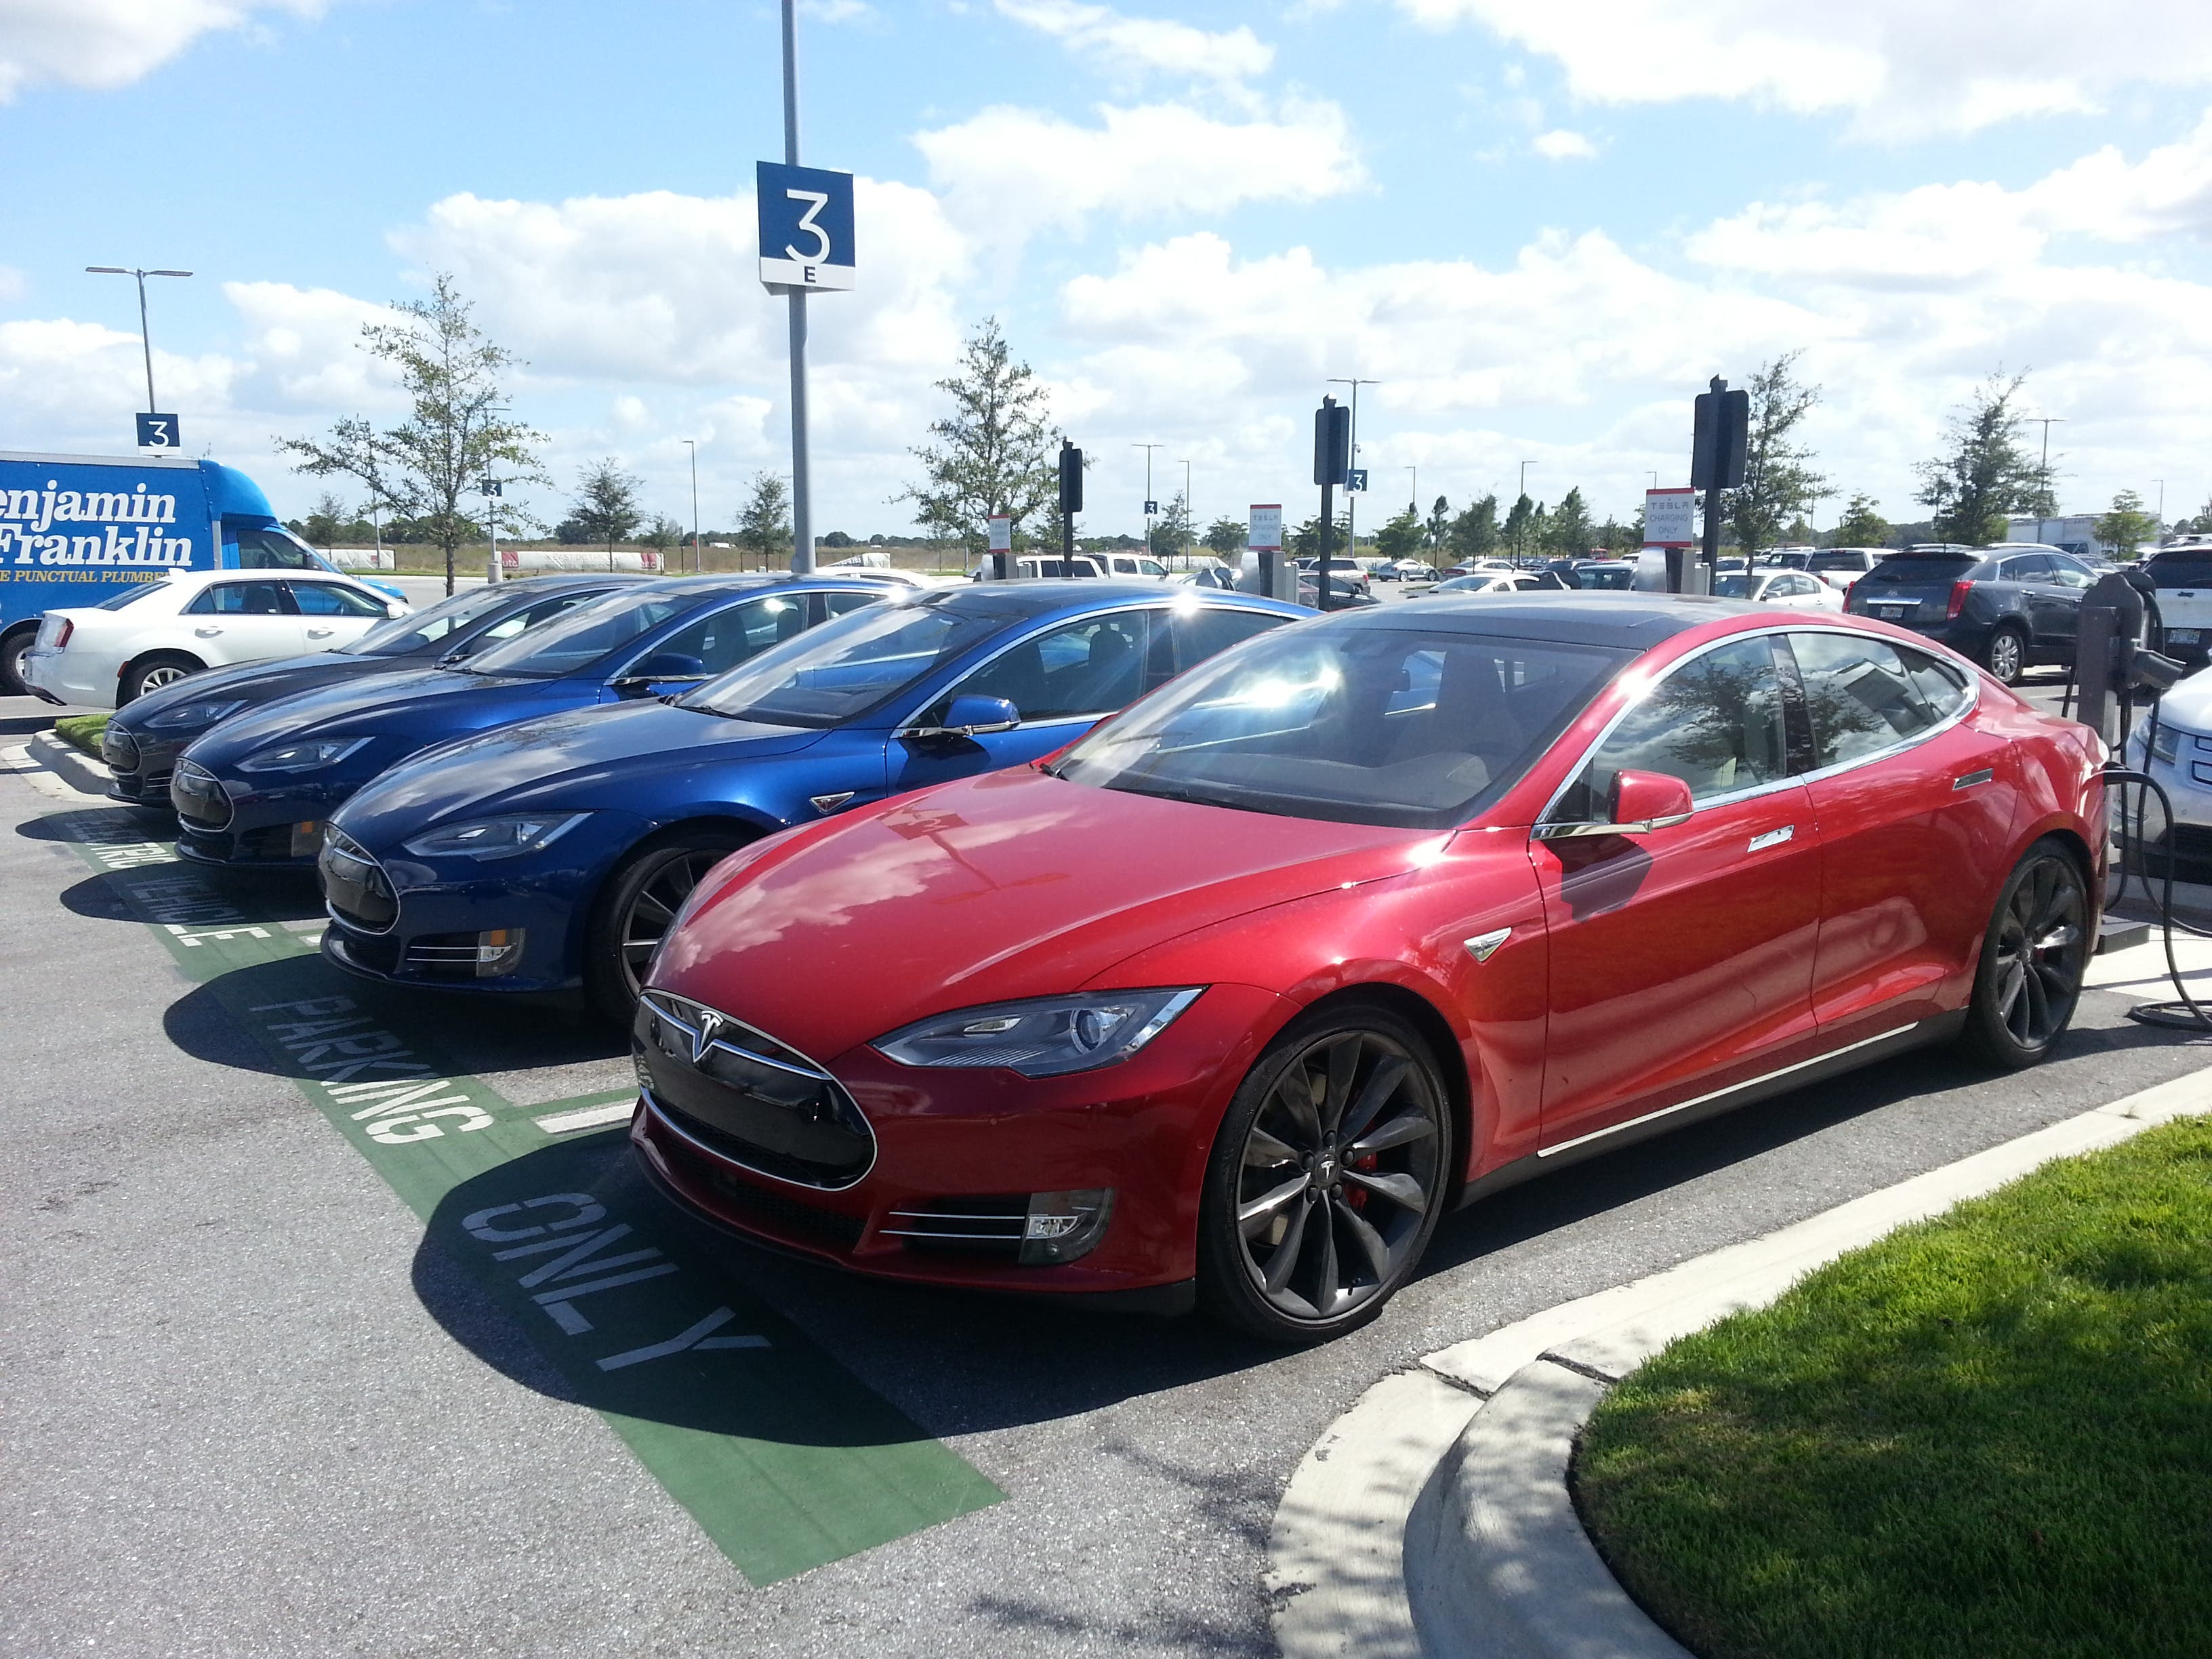 bmw i3 vs tesla model s the dilemma continues cleantechnica. Black Bedroom Furniture Sets. Home Design Ideas